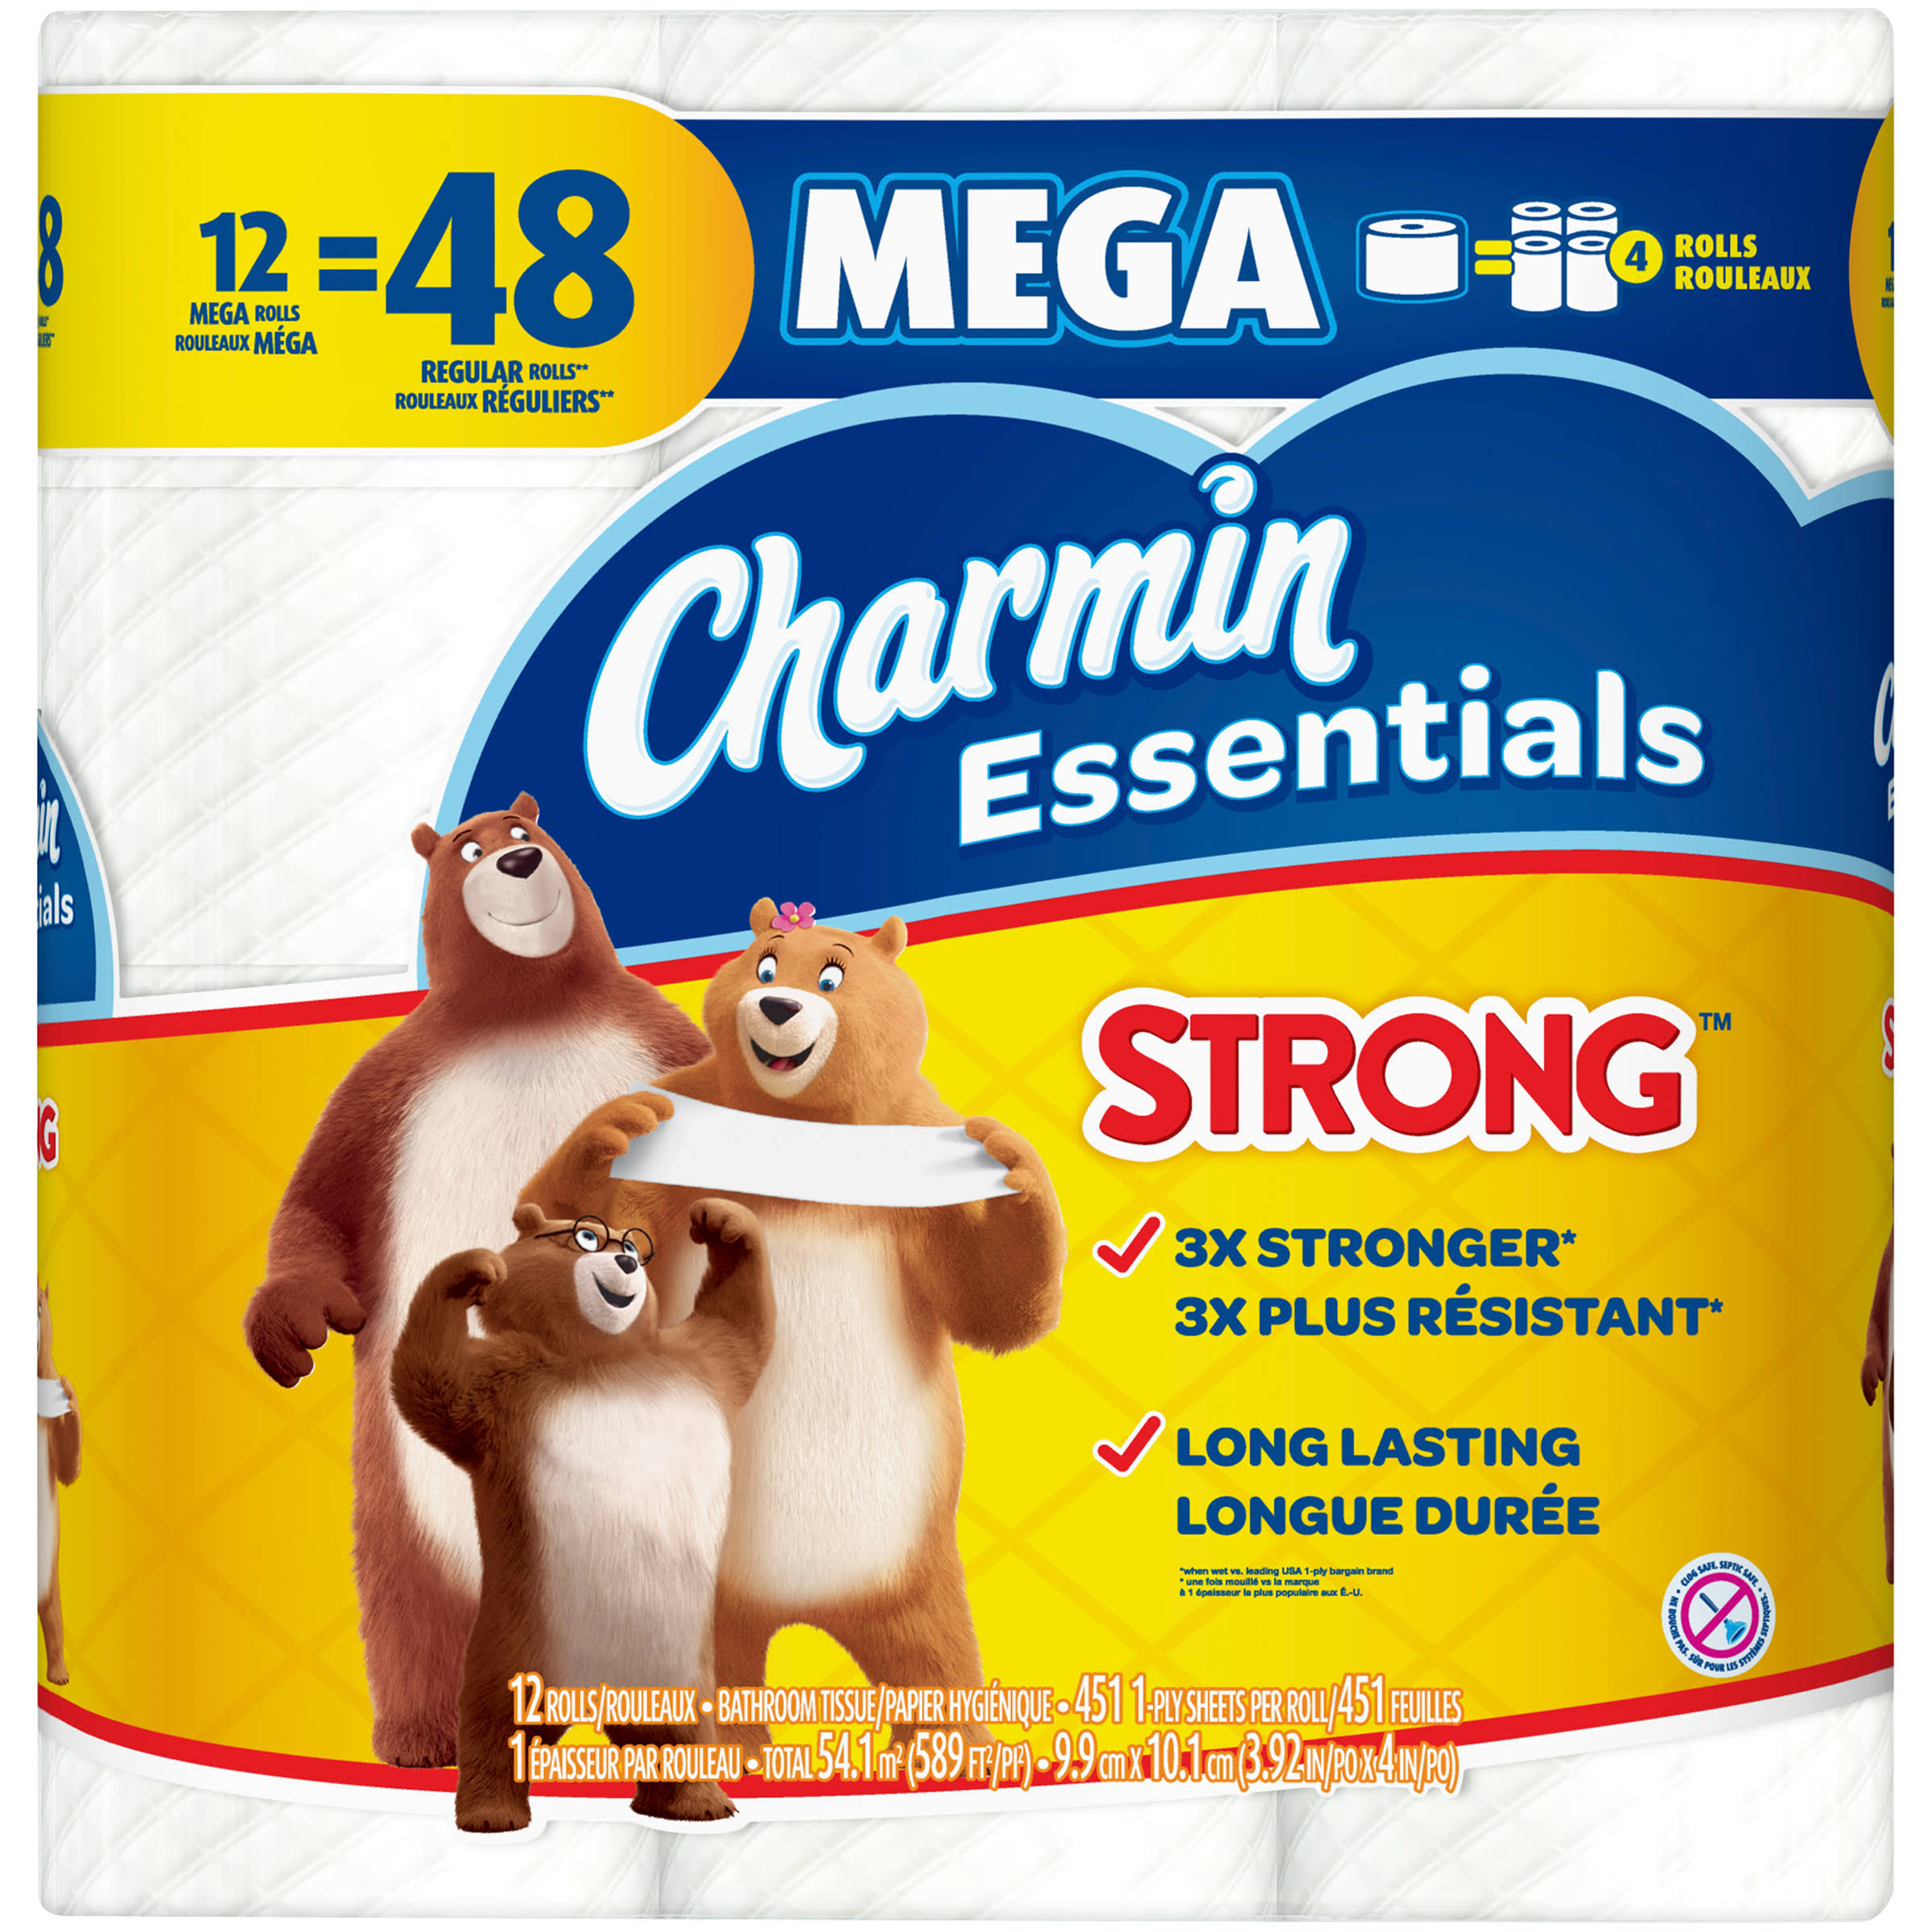 Charmin Essentials Bathroom Tissue, Mega Roll, Strong, 1-Ply - 12 rolls